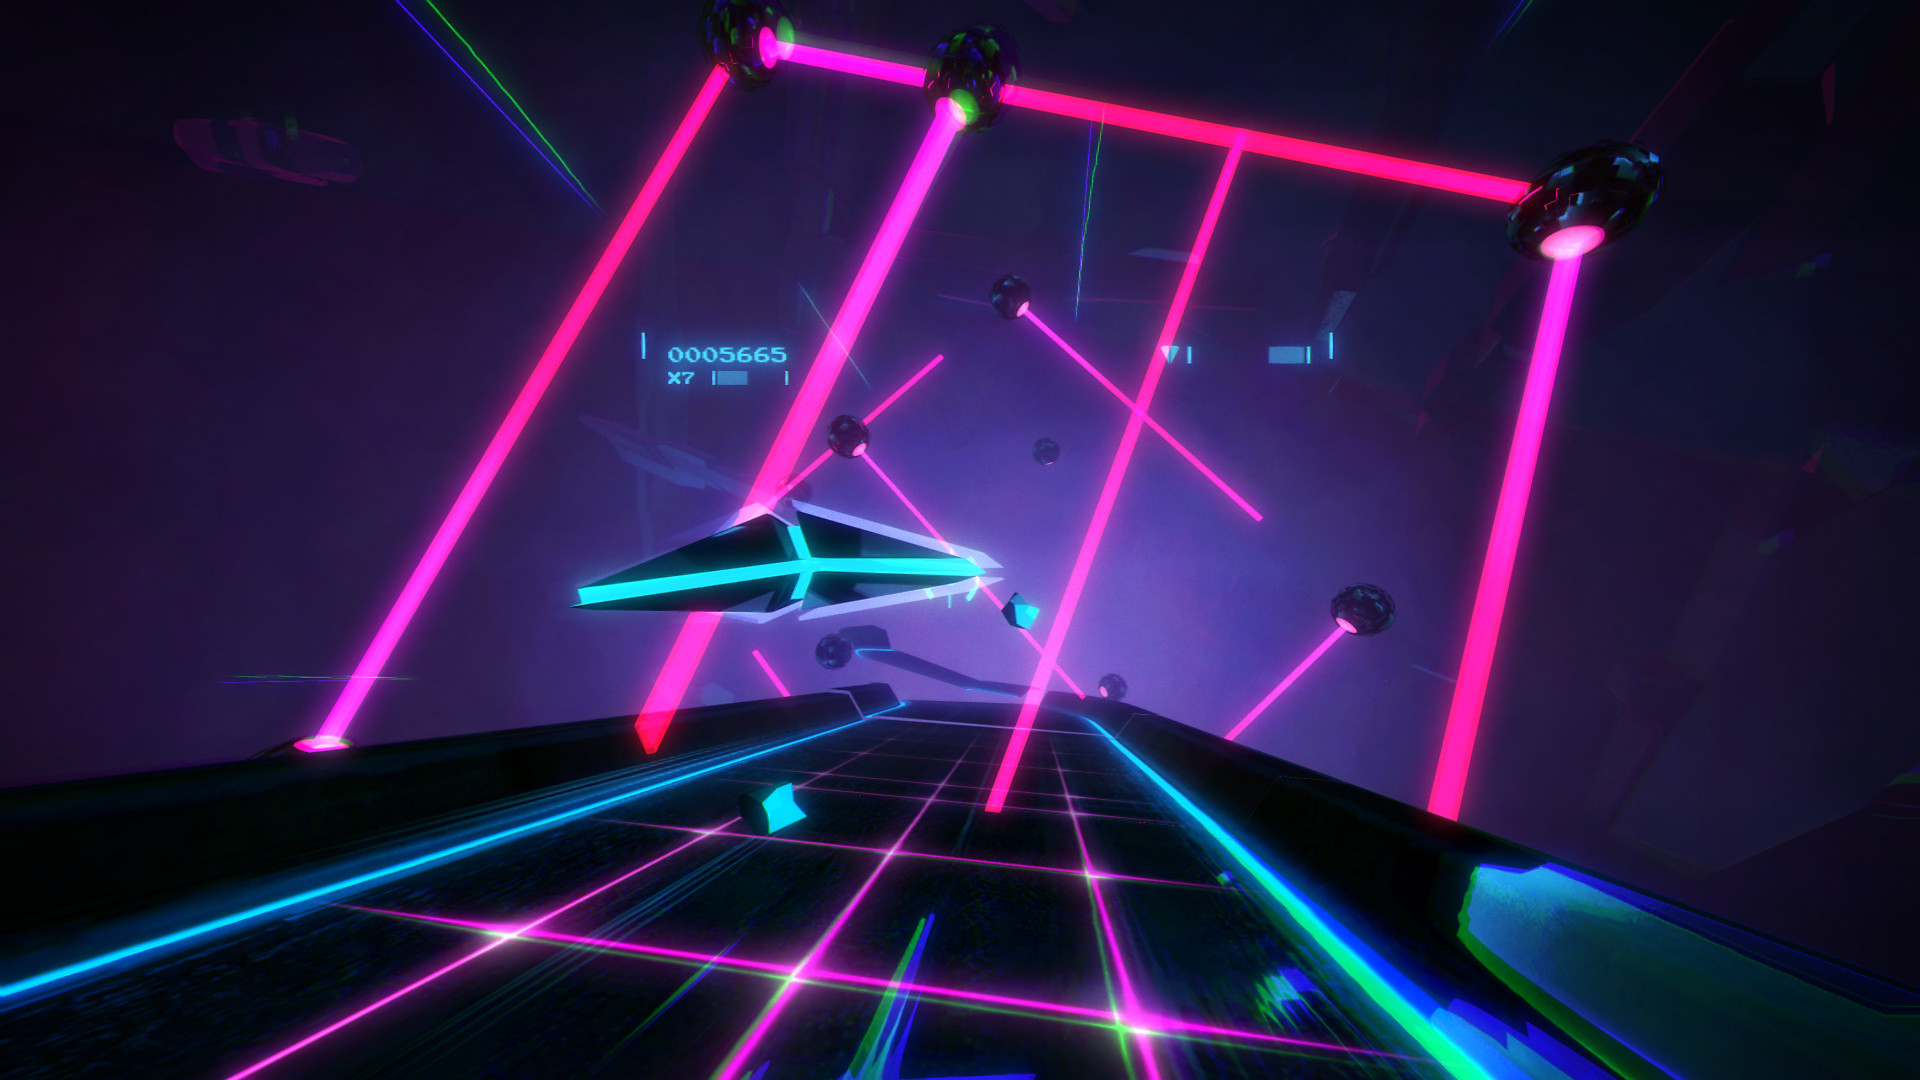 Gameplay screen, track with lasers and ships